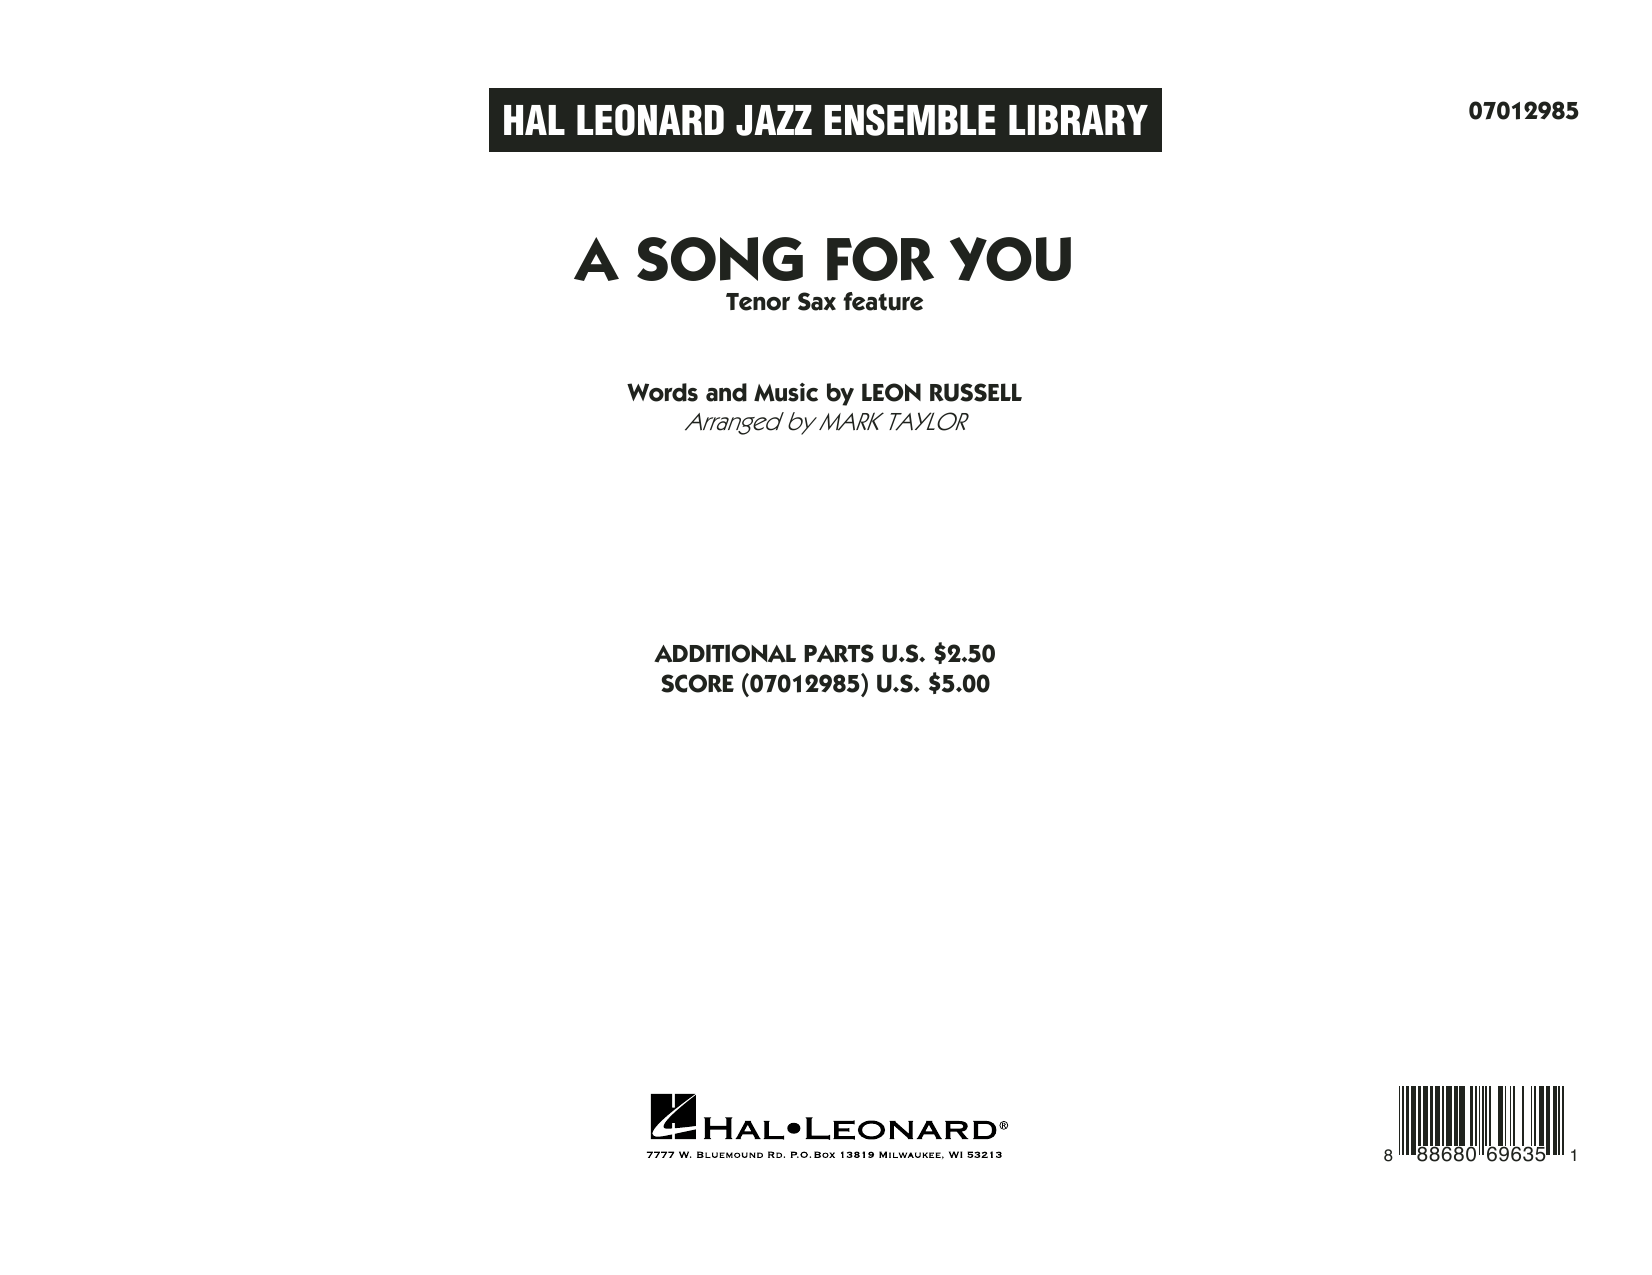 A Song for You (Tenor Sax Feature)